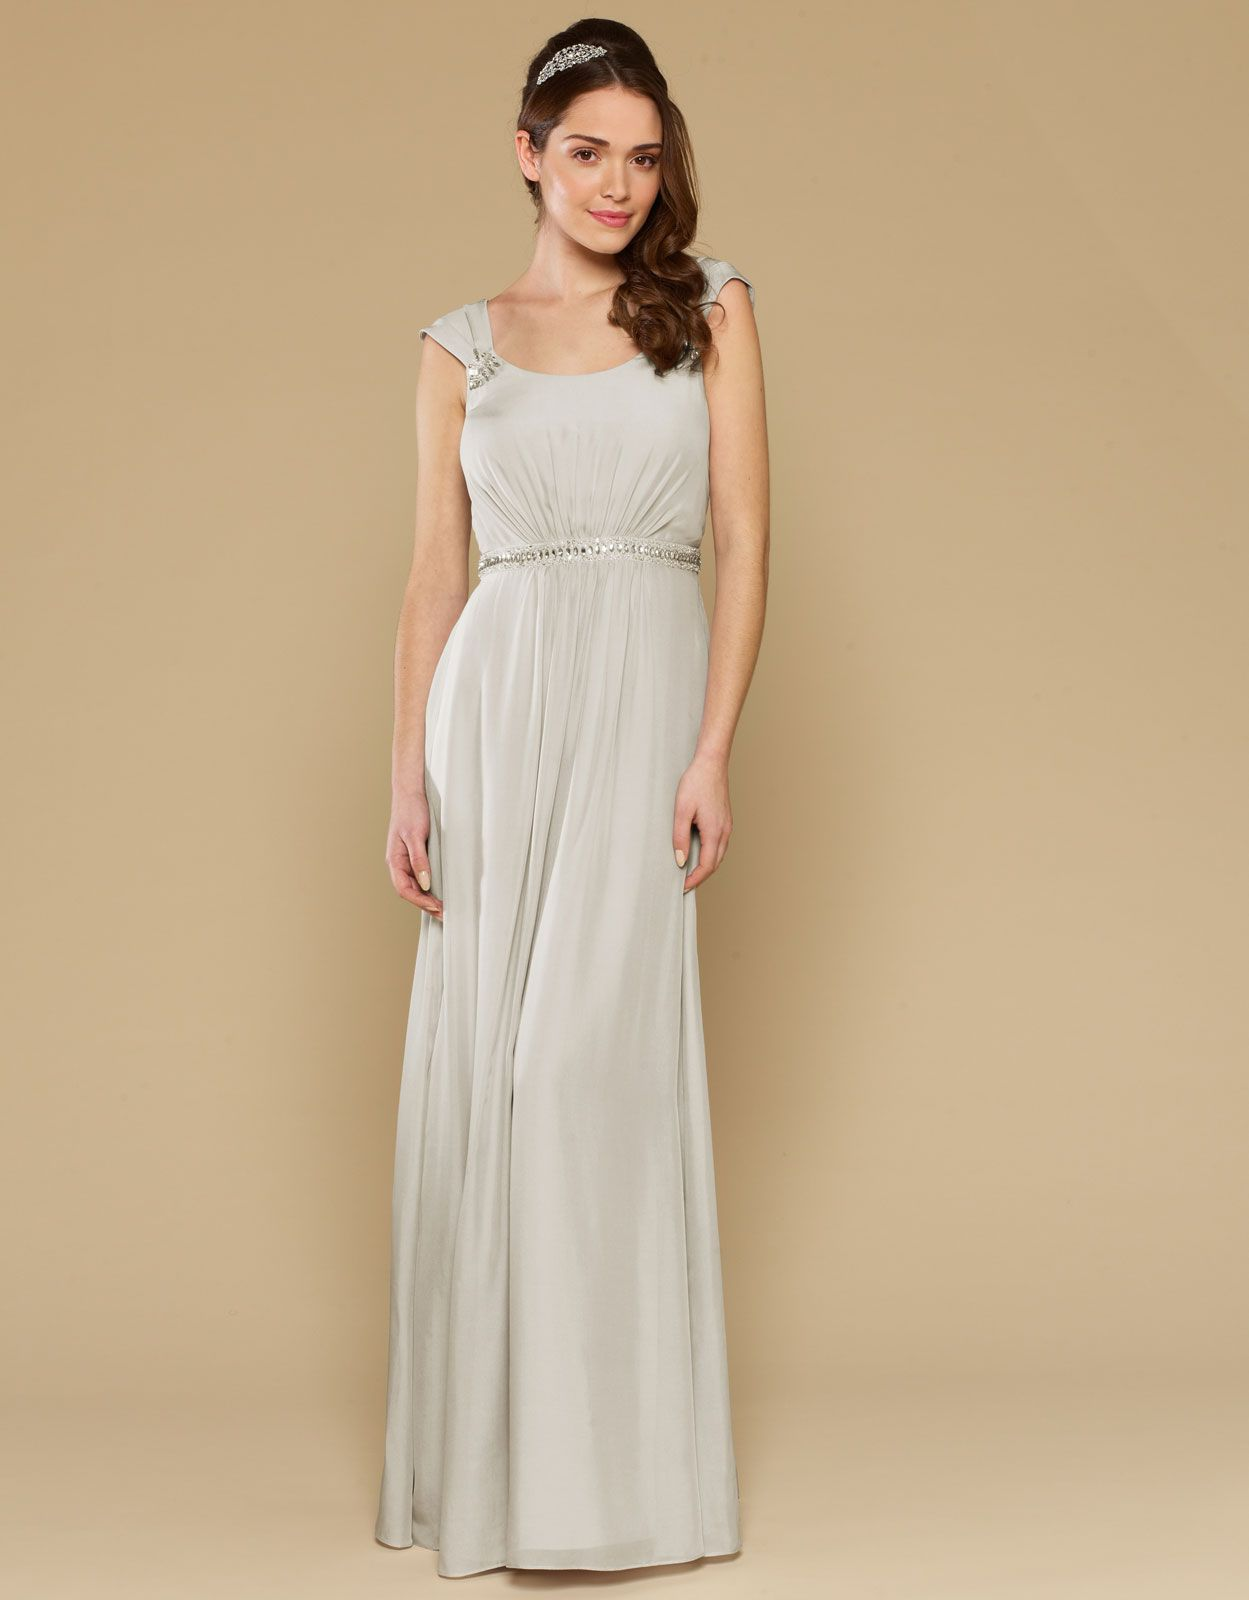 Fair trade dress lainie maxi silver monsoon clothing etc exclusively designed midi and maxi bridesmaids dresses from monsoon perfect for complimenting your wedding dress ombrellifo Choice Image